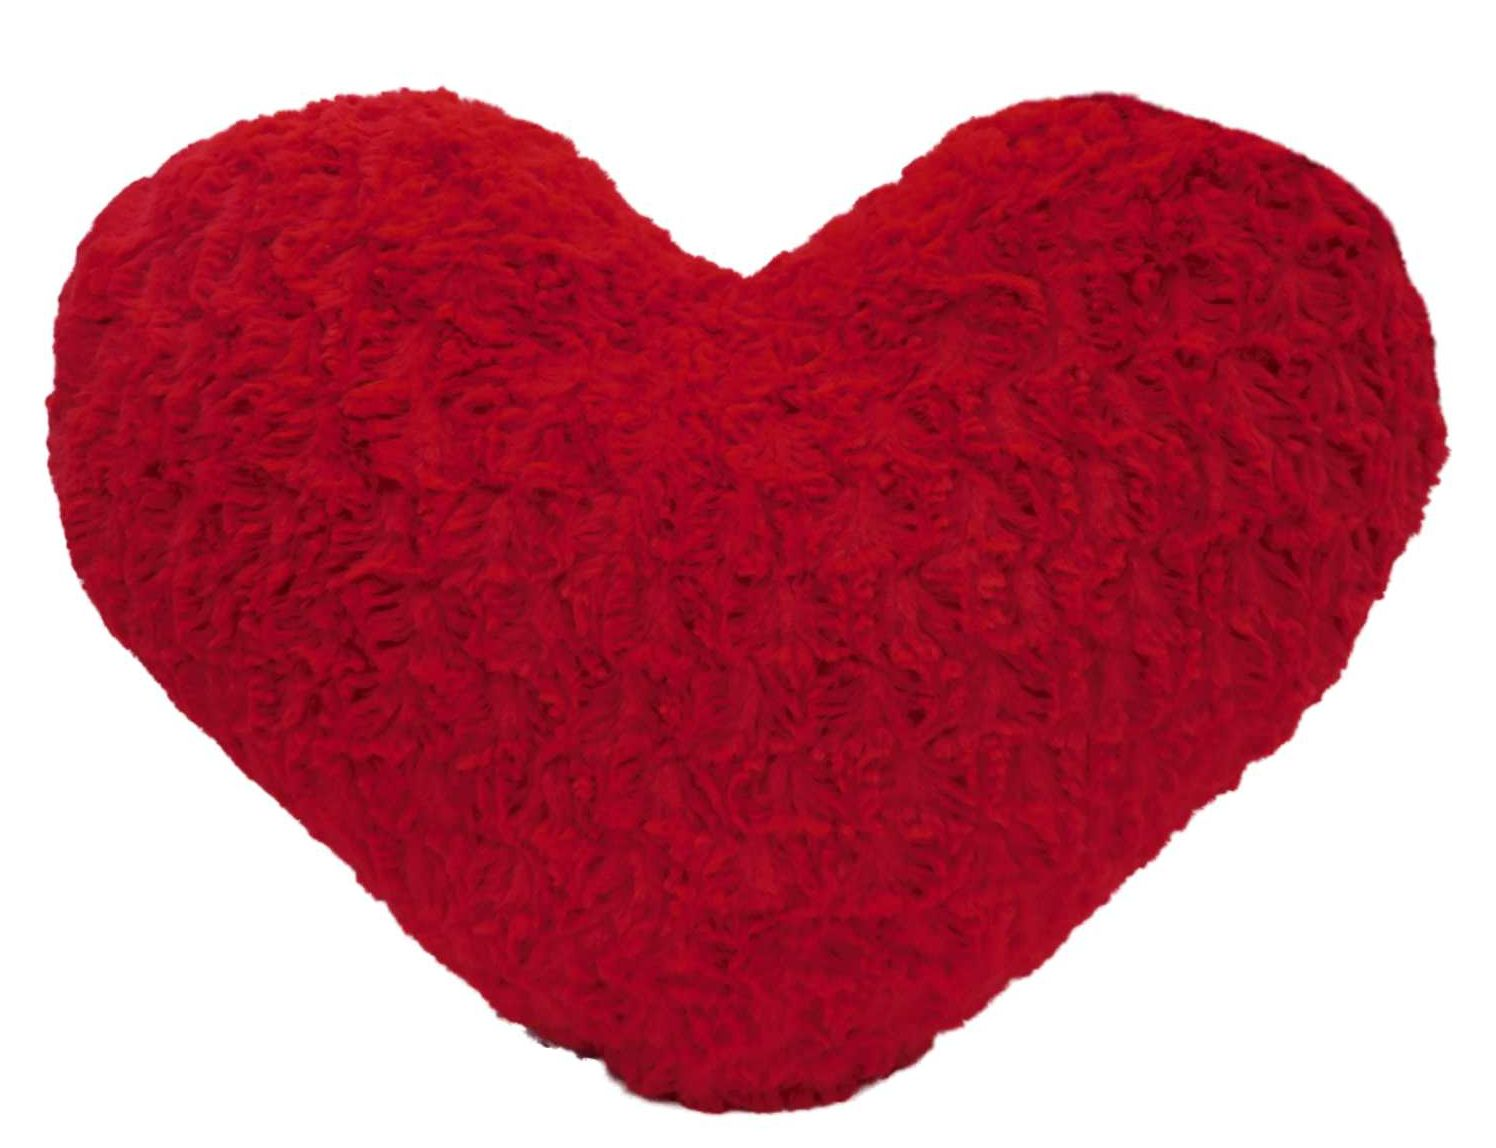 decor oversized red heart shaped faux fur throw pillow valentine accent cushion